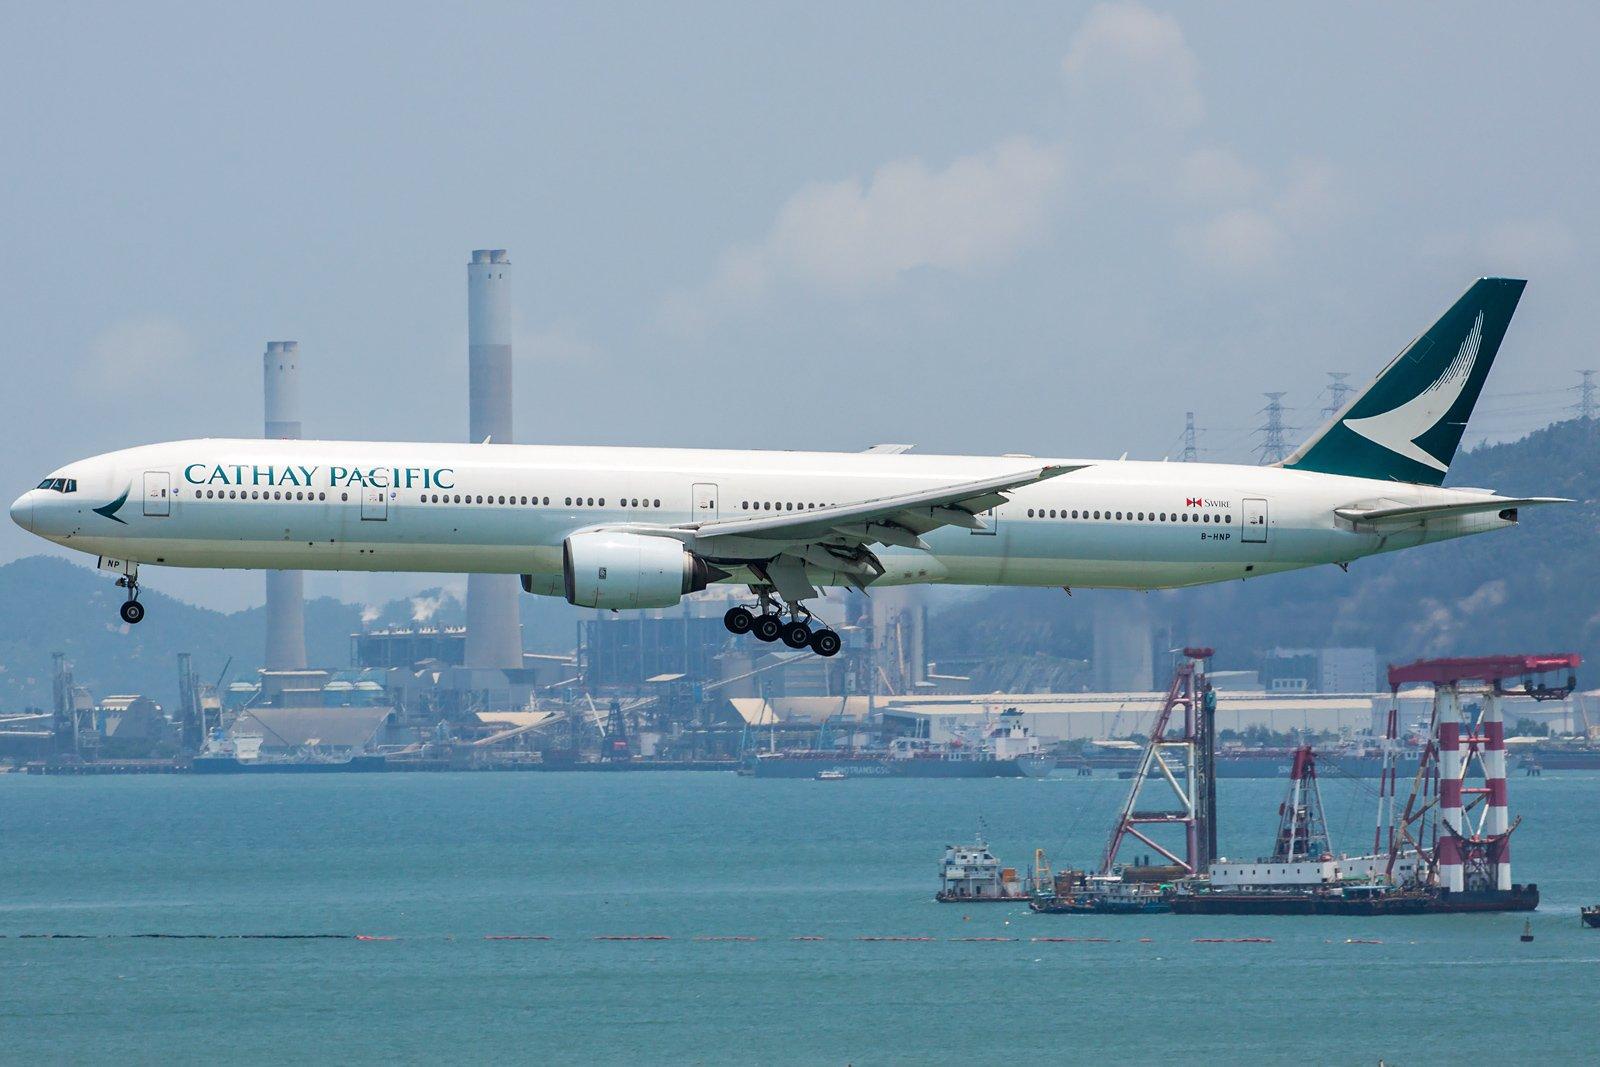 Cathay Pacific Boeing 777-367 B-HNP